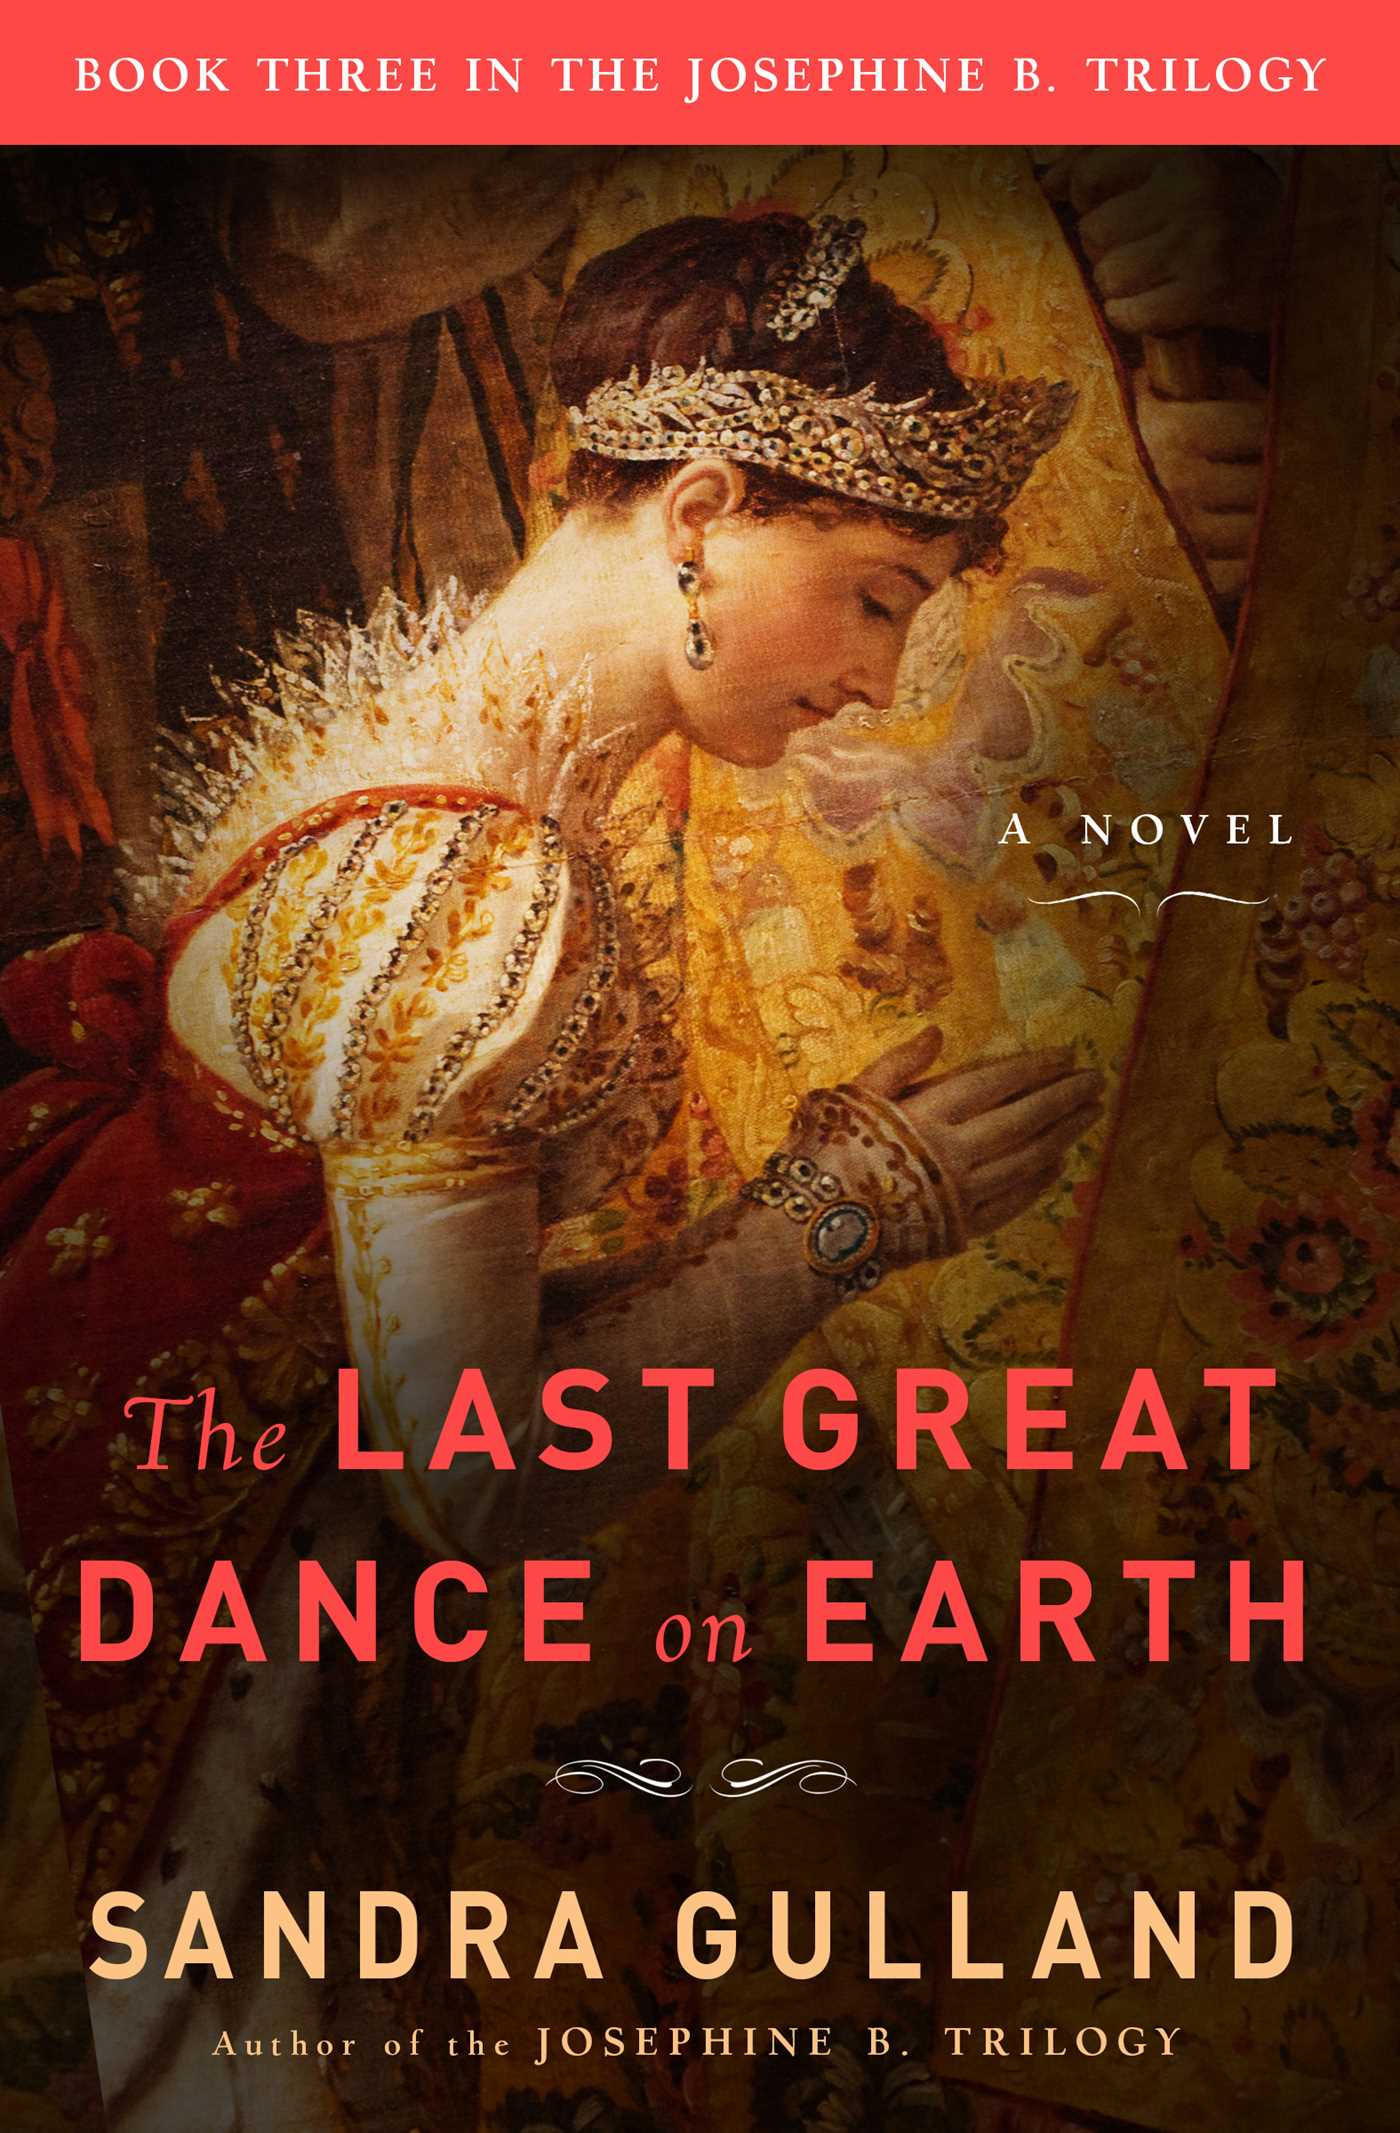 The-last-great-dance-on-earth-9780743213592_hr